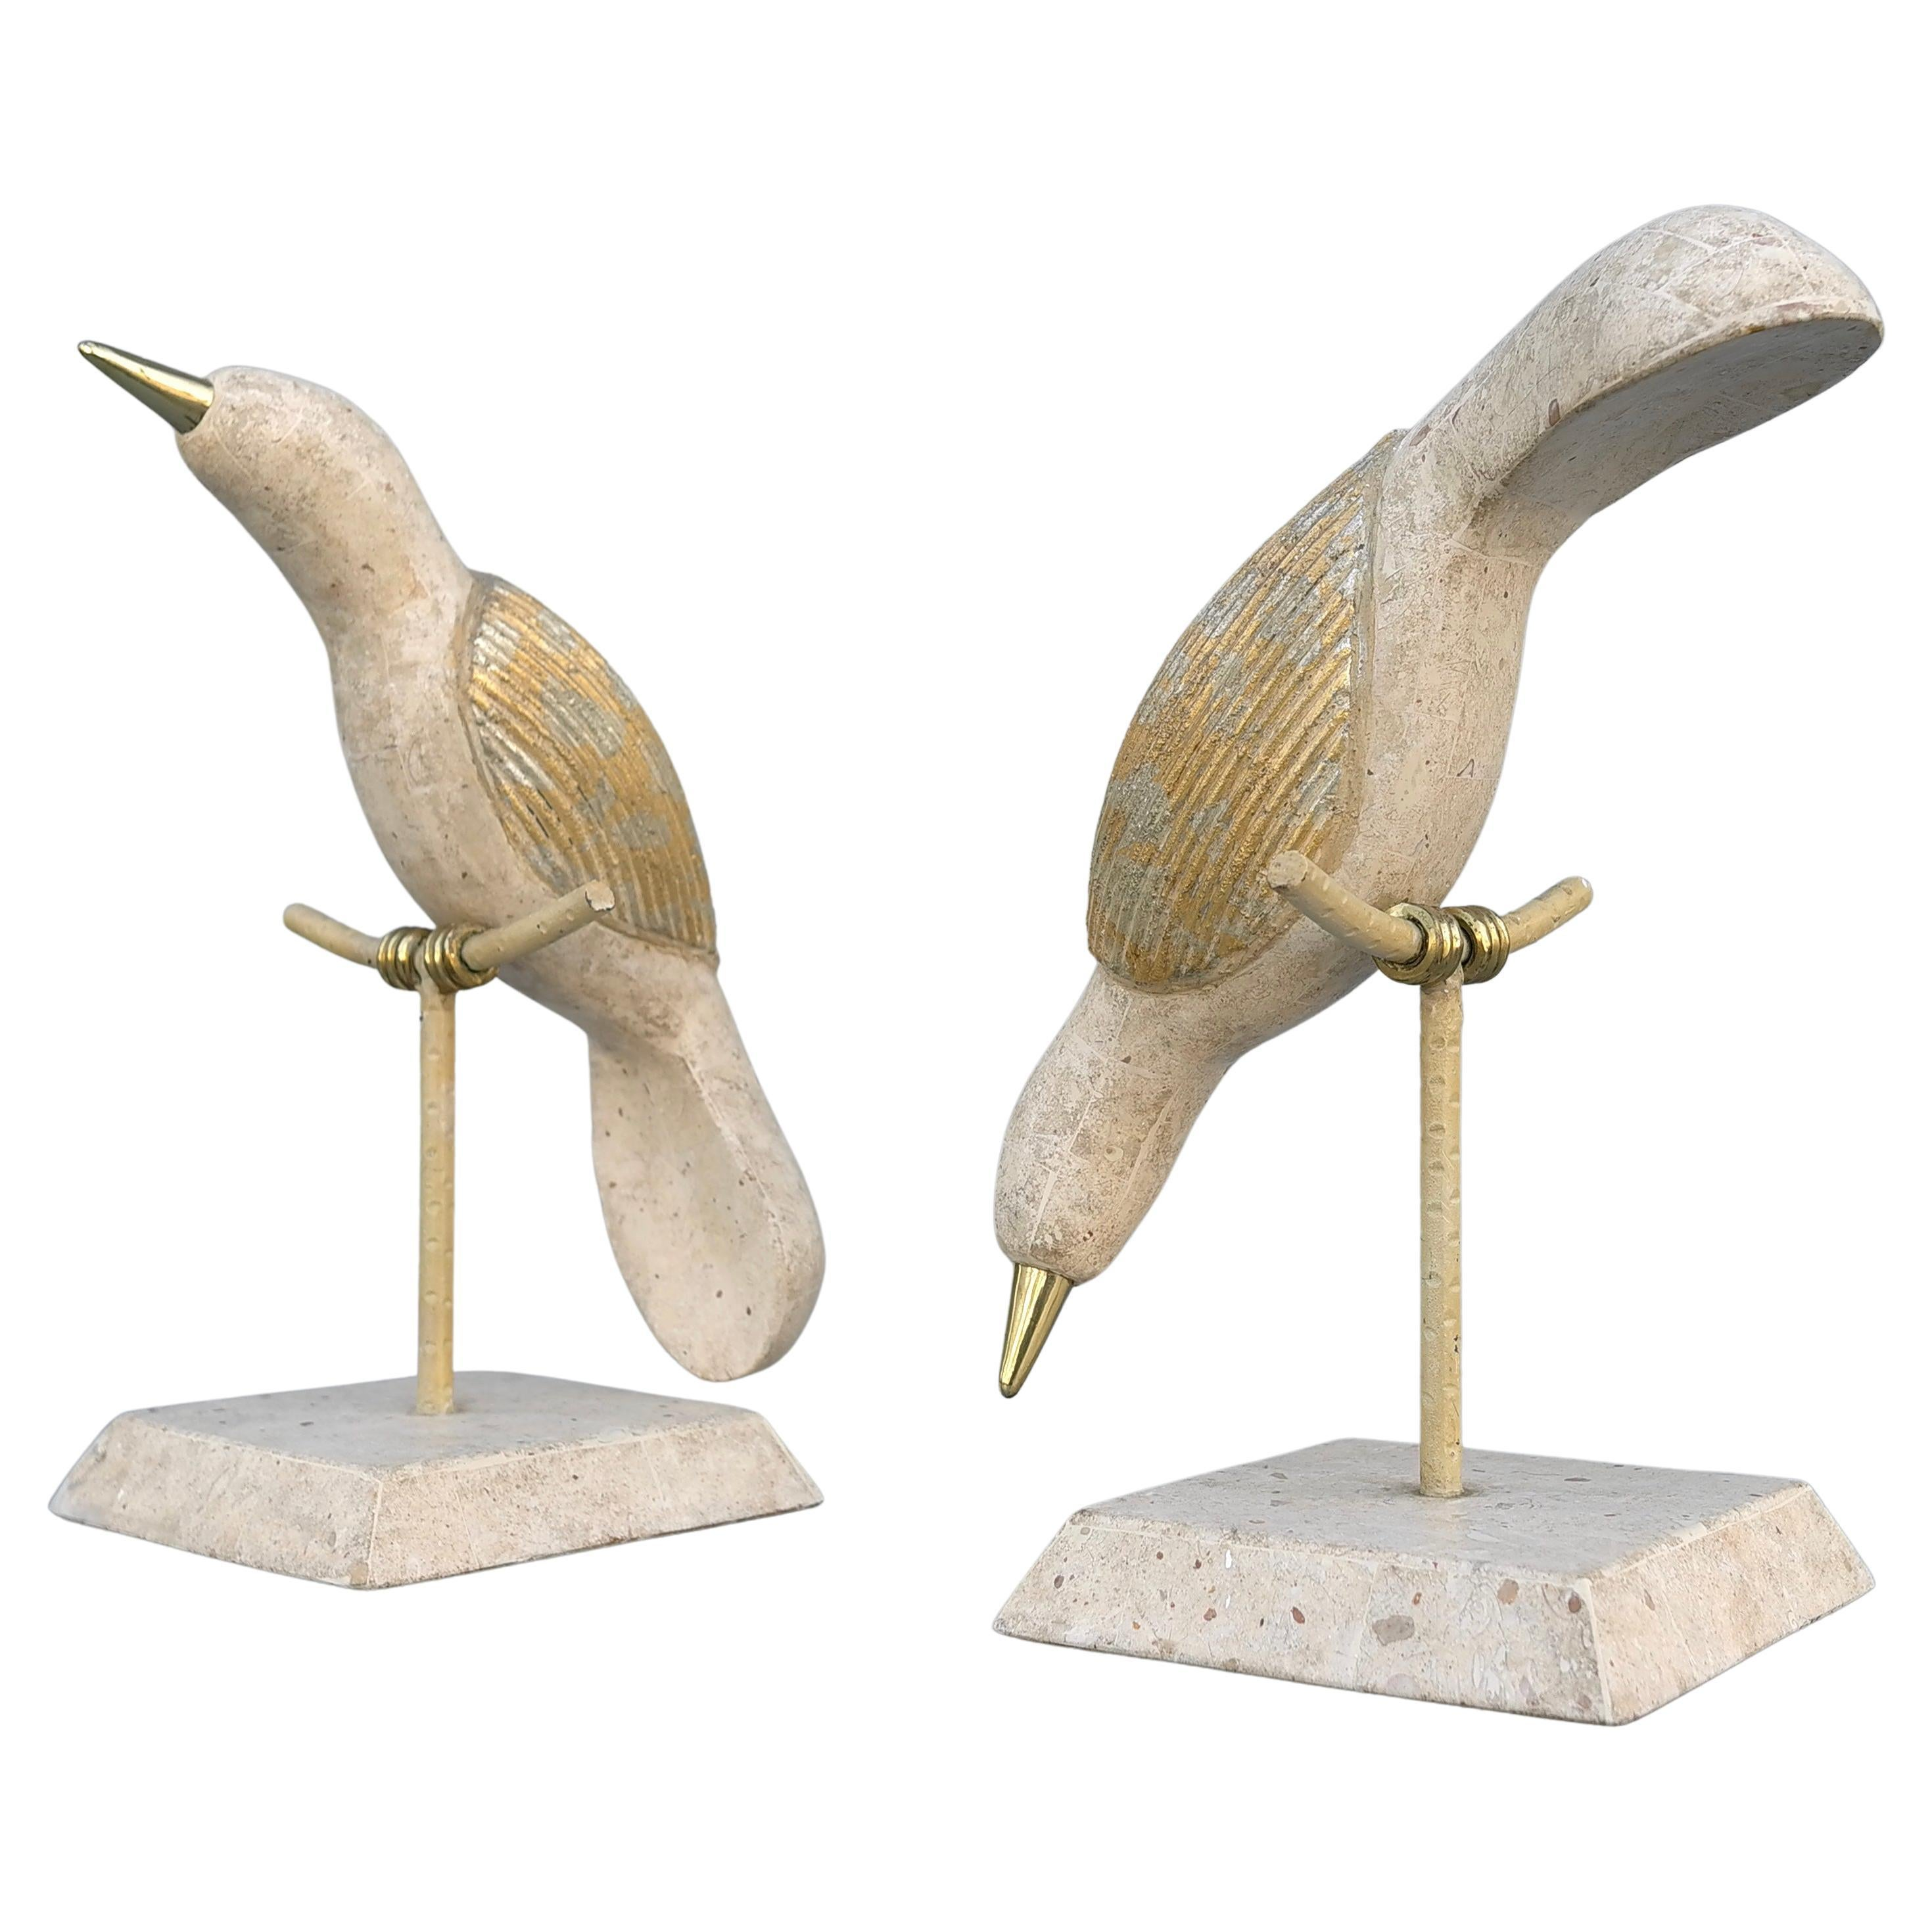 Tessellated Stone and Brass Birds Abstract Sculptures by Maitland Smith 1970's